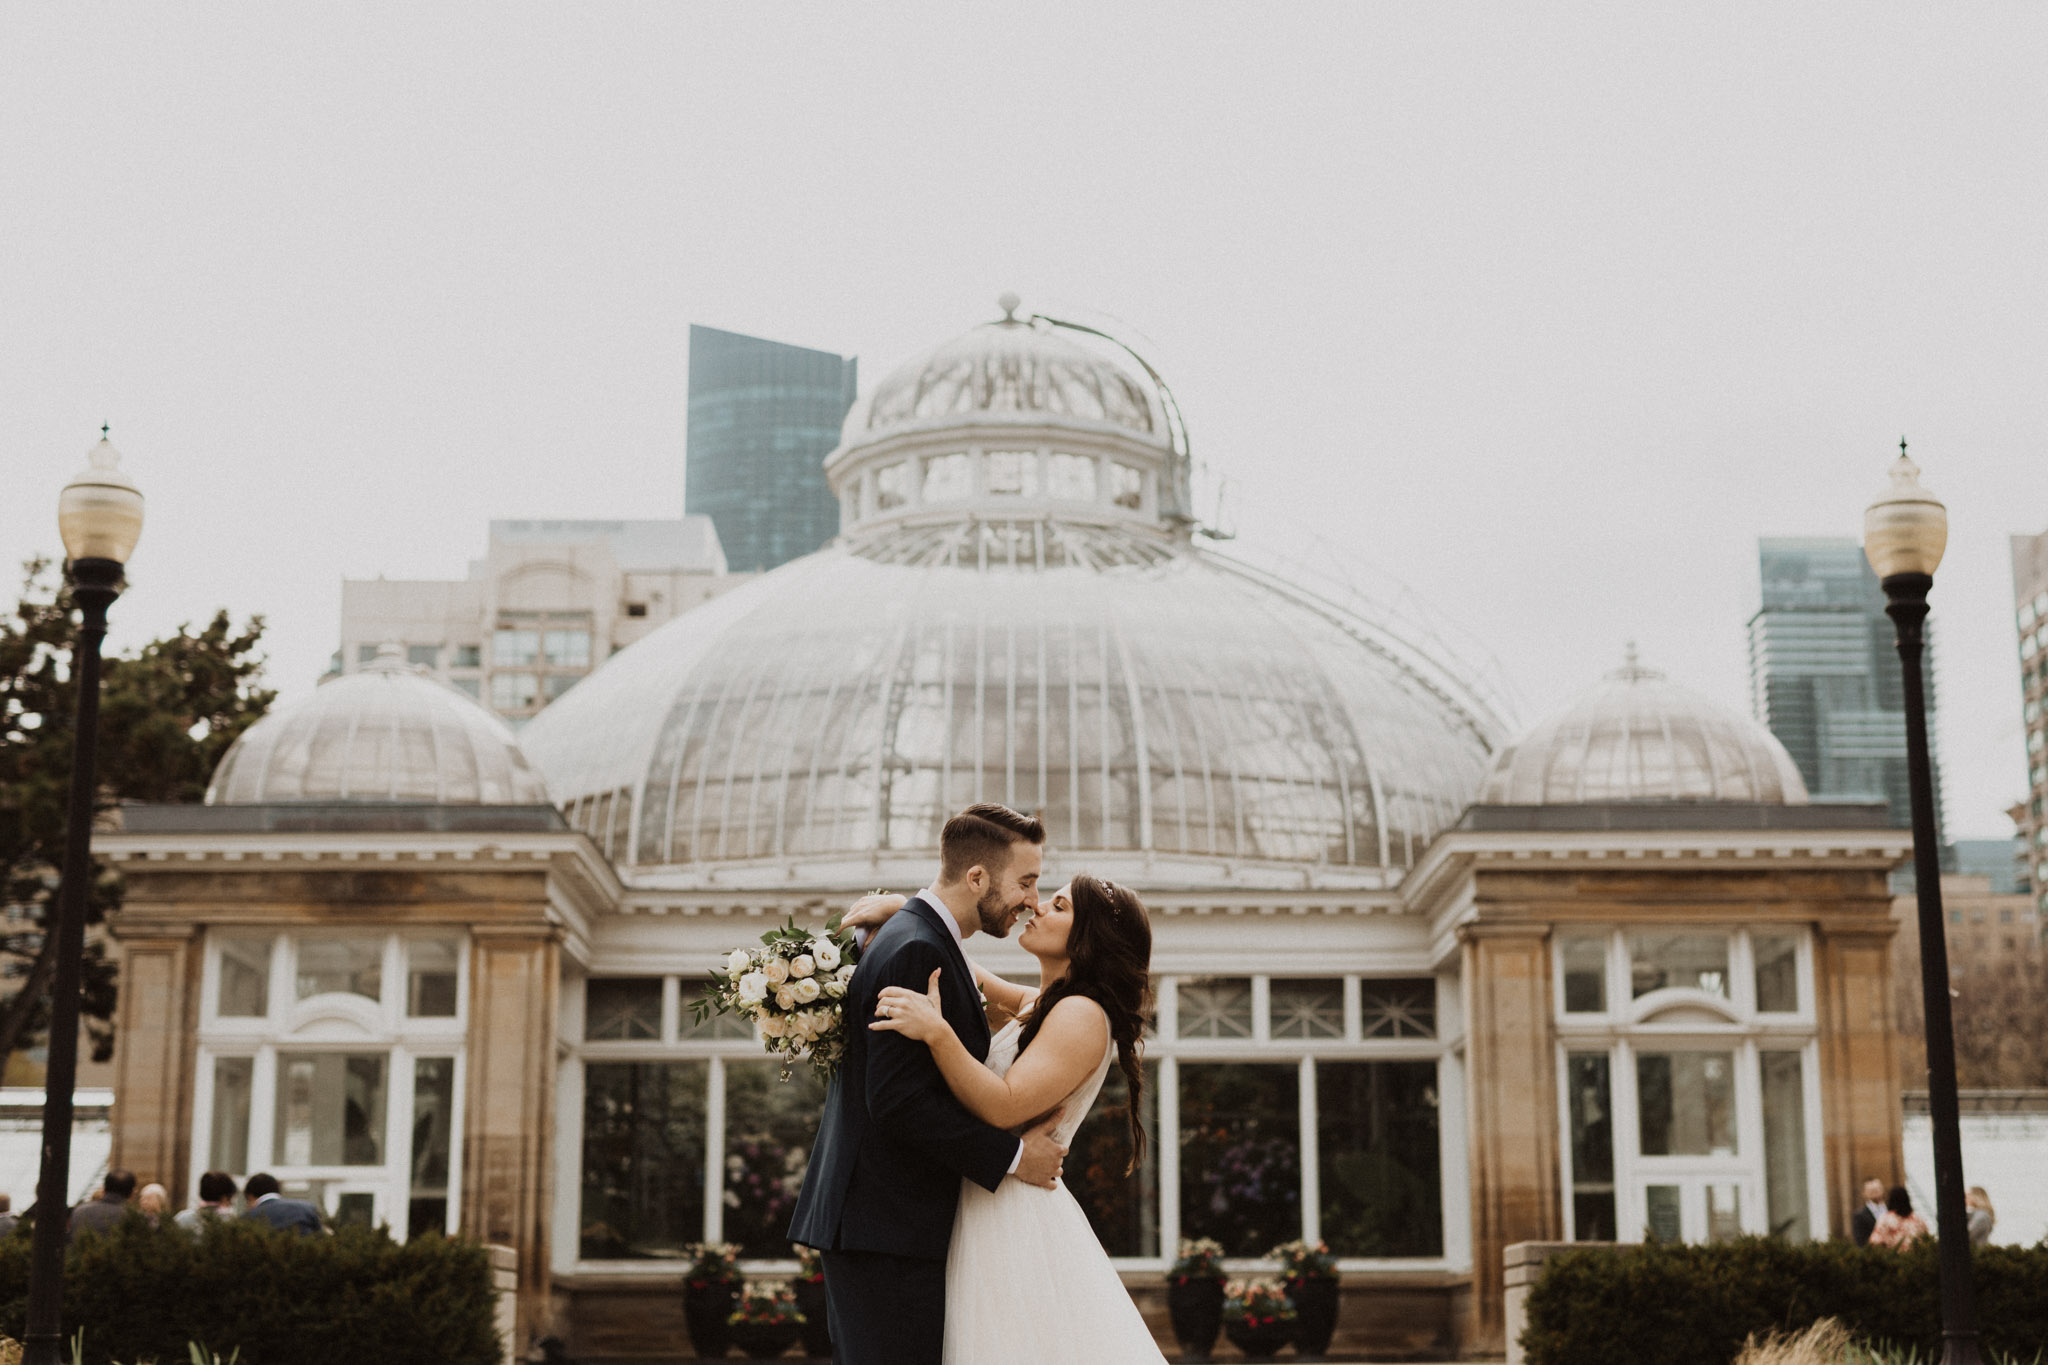 Greenhouse Elopement Allan Gardens Toronto - bride and groom kiss in front of greenhouse